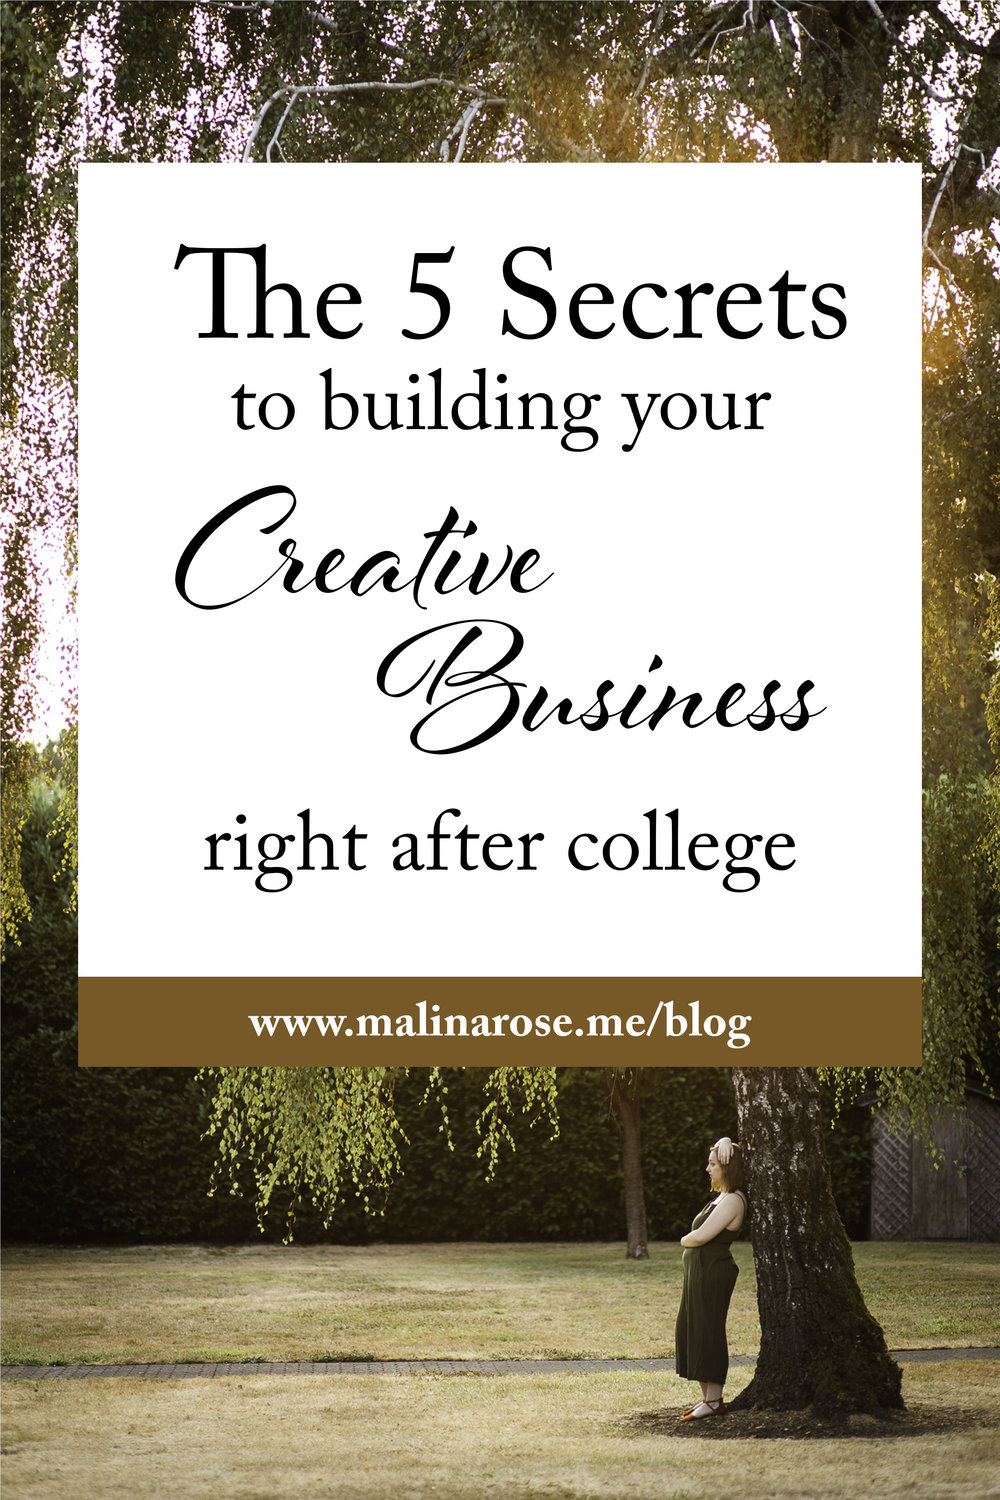 5 secrets to building creative biz blog header image.jpg